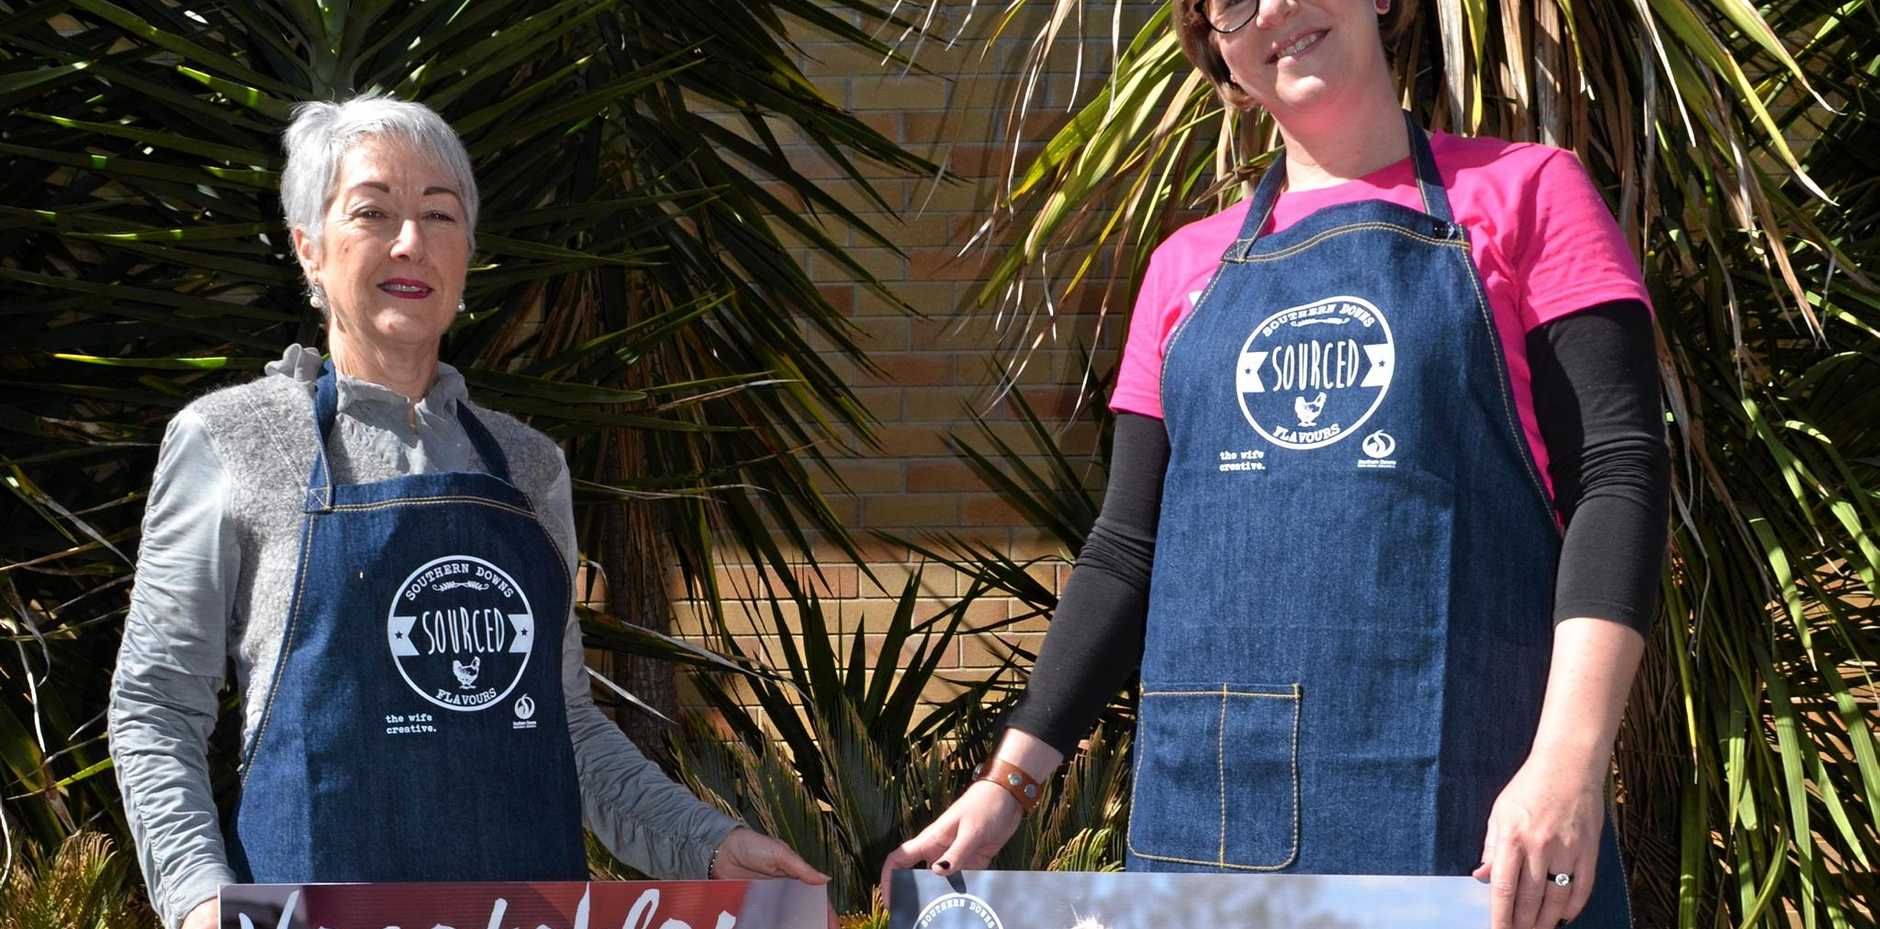 SOURCED FRESH: Mayor Tracy Dobie and Sourced spokeswoman Amy Walker get kitted up for the Stroll 'n' Swing markets today.